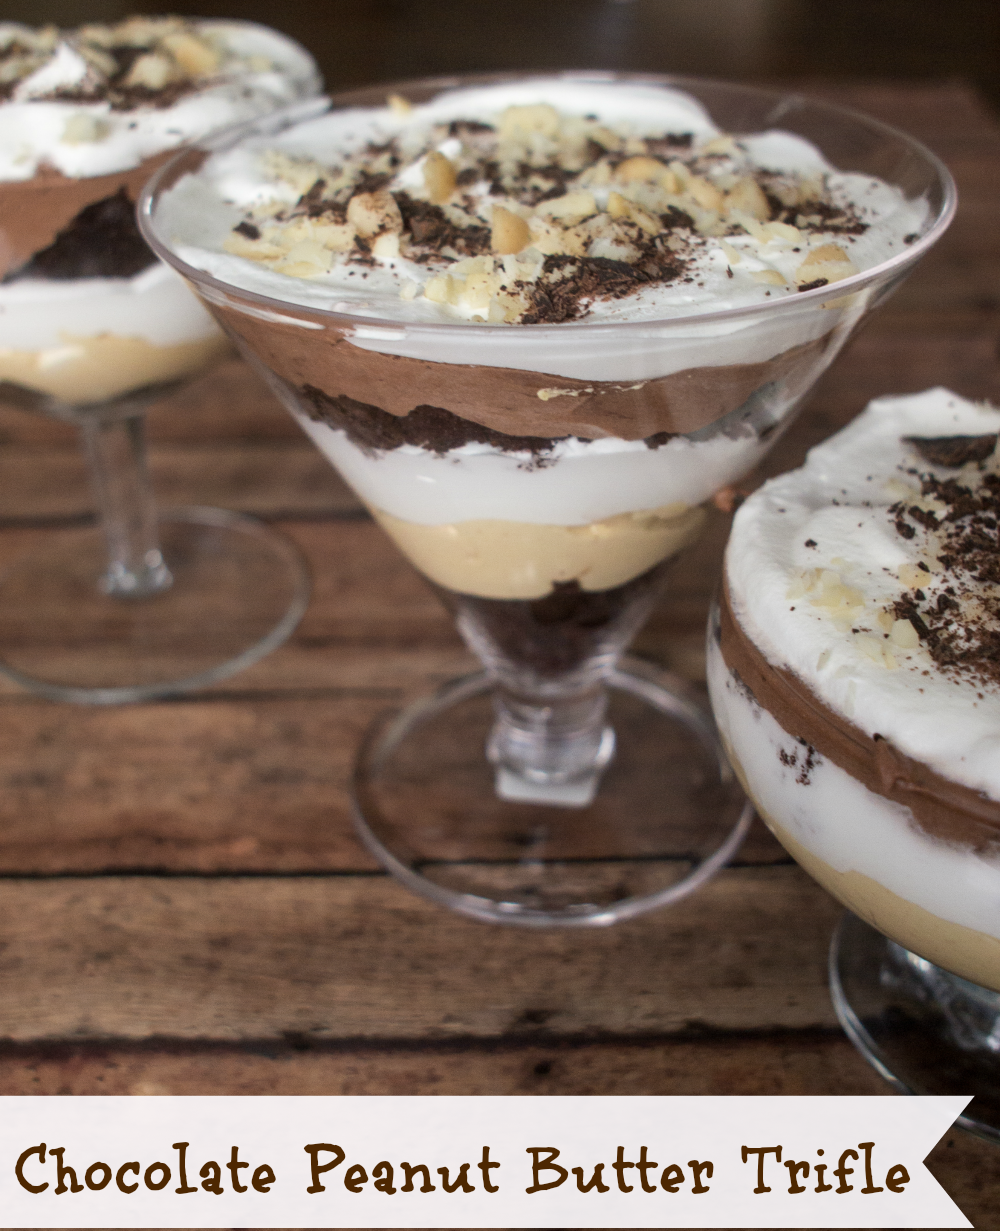 Chocolate Peanut Butter Trifle - This tasty Chocolate Peanut Butter Trifle recipe is easy to make, with layers of peanut butter and chocolate pudding topped with whipped cream.